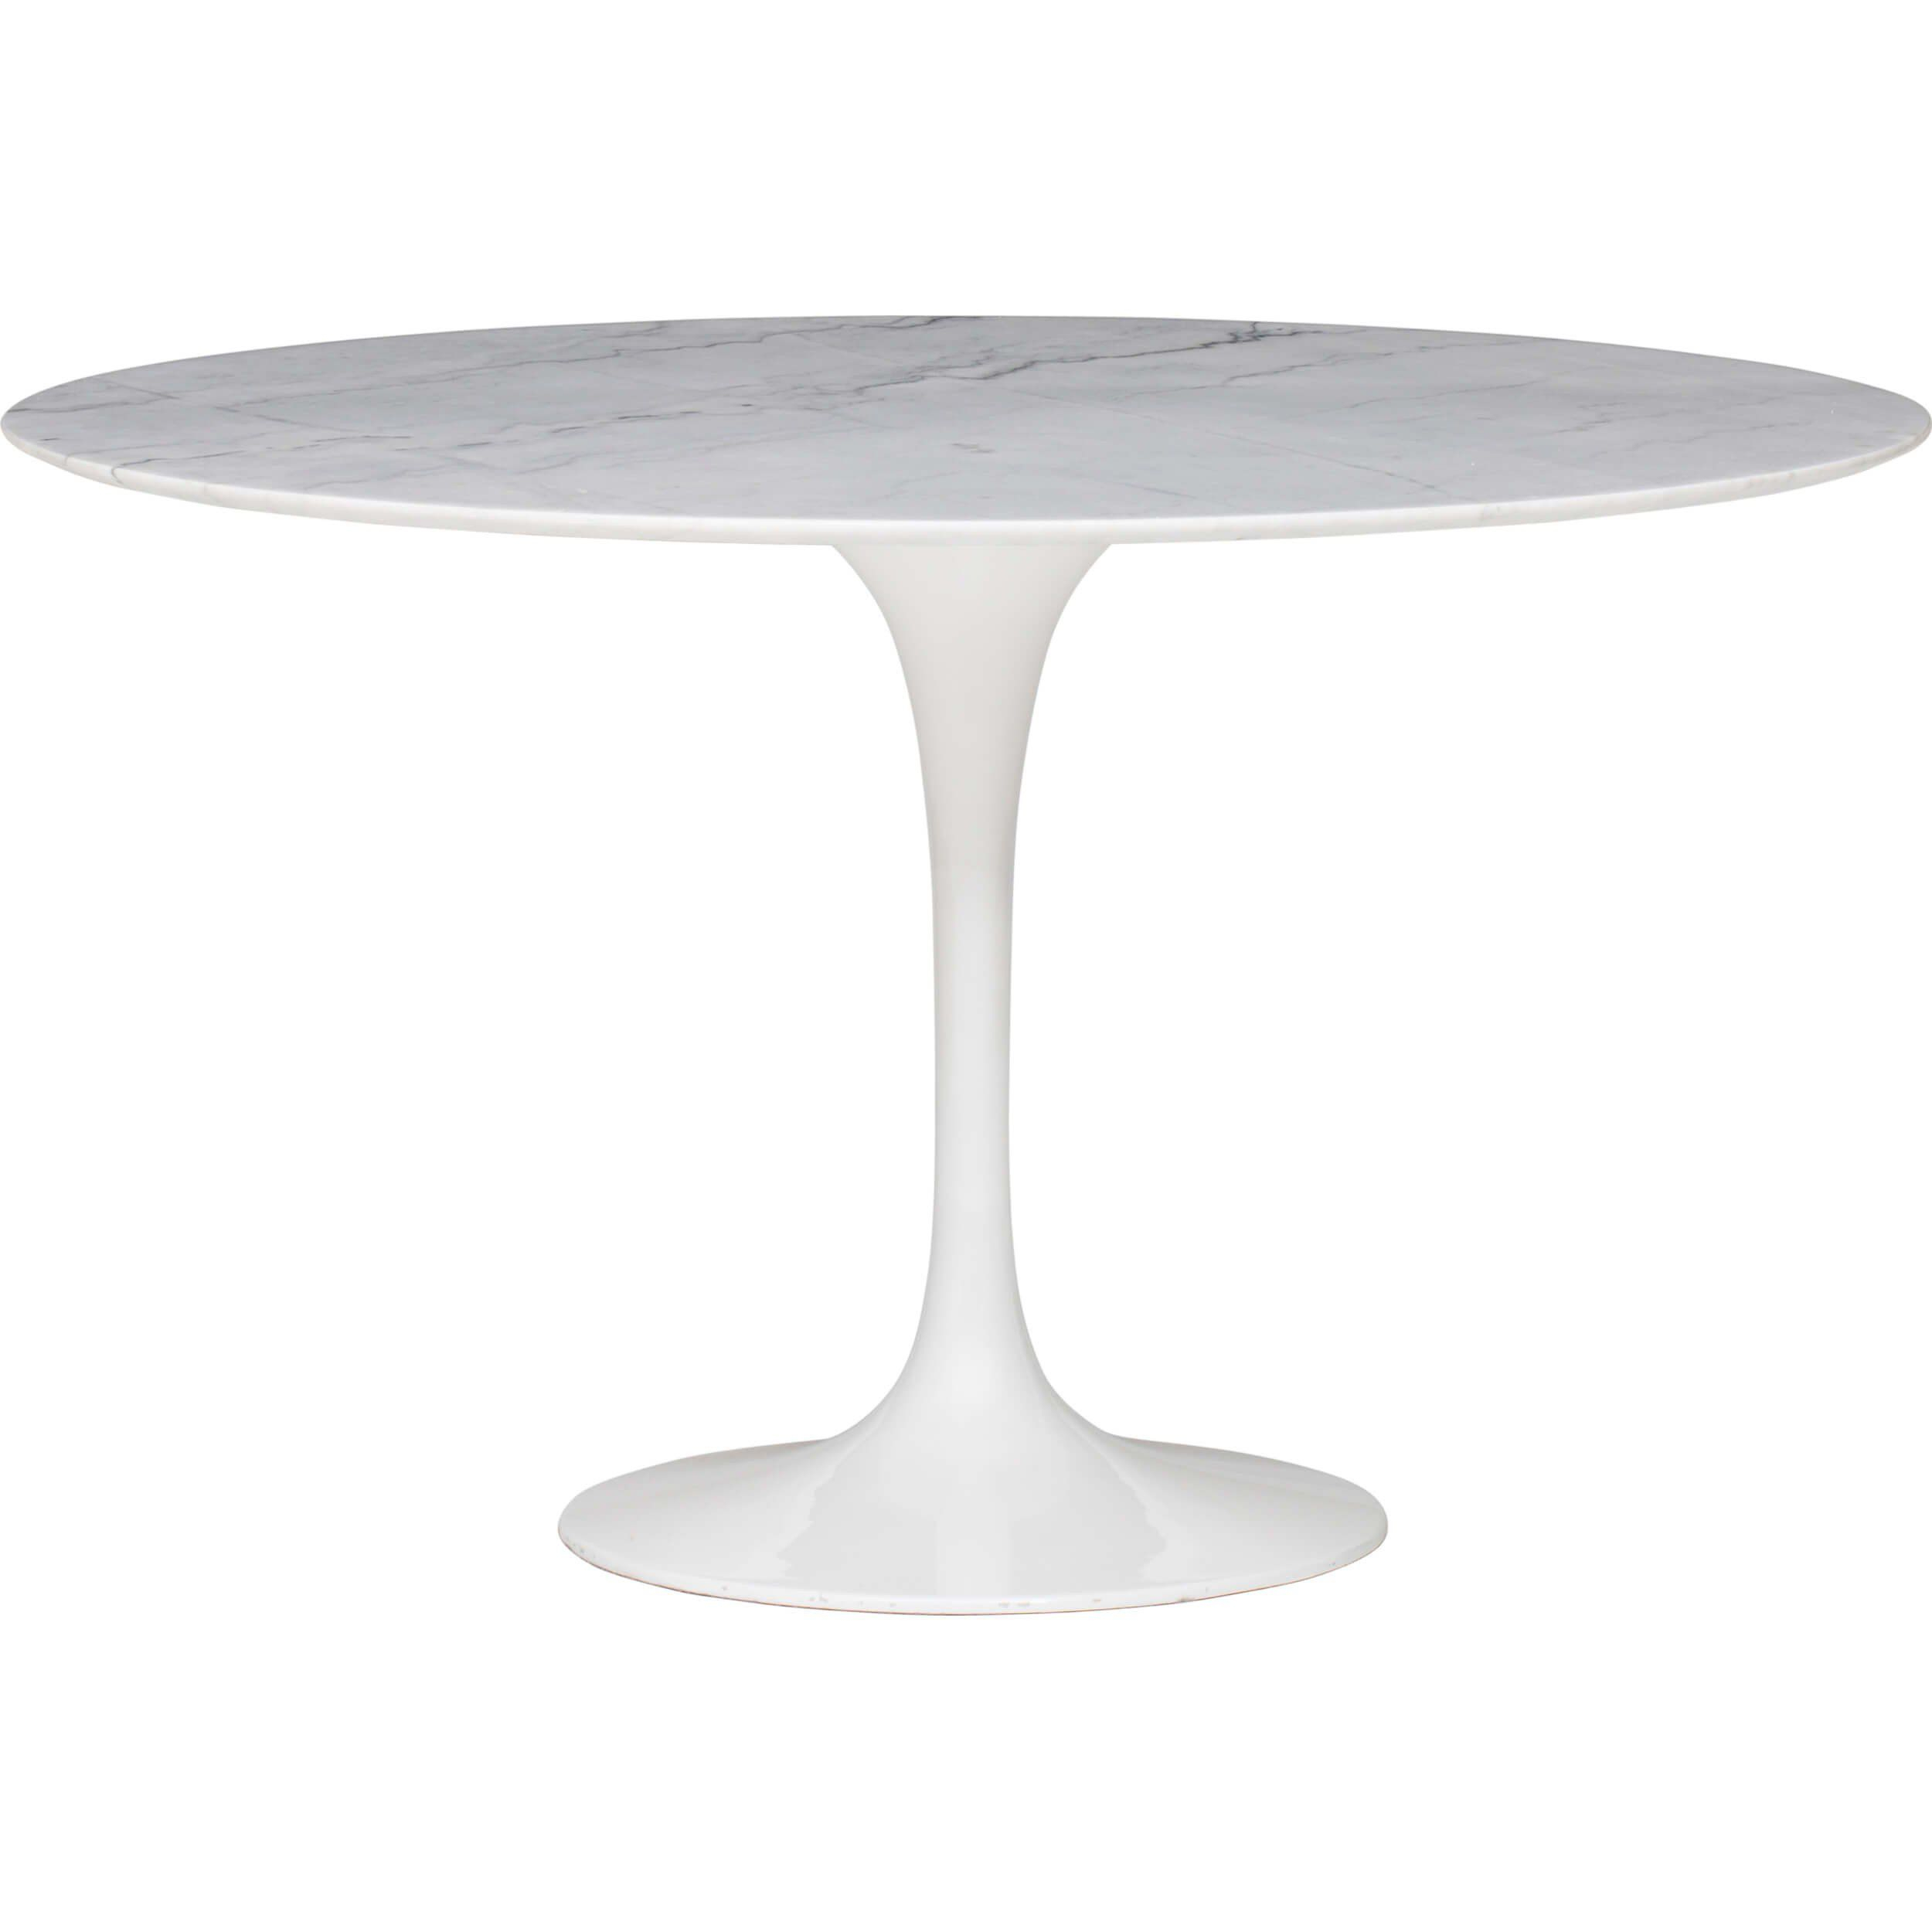 "Cal 48"" Round Dining Table, White Marble 